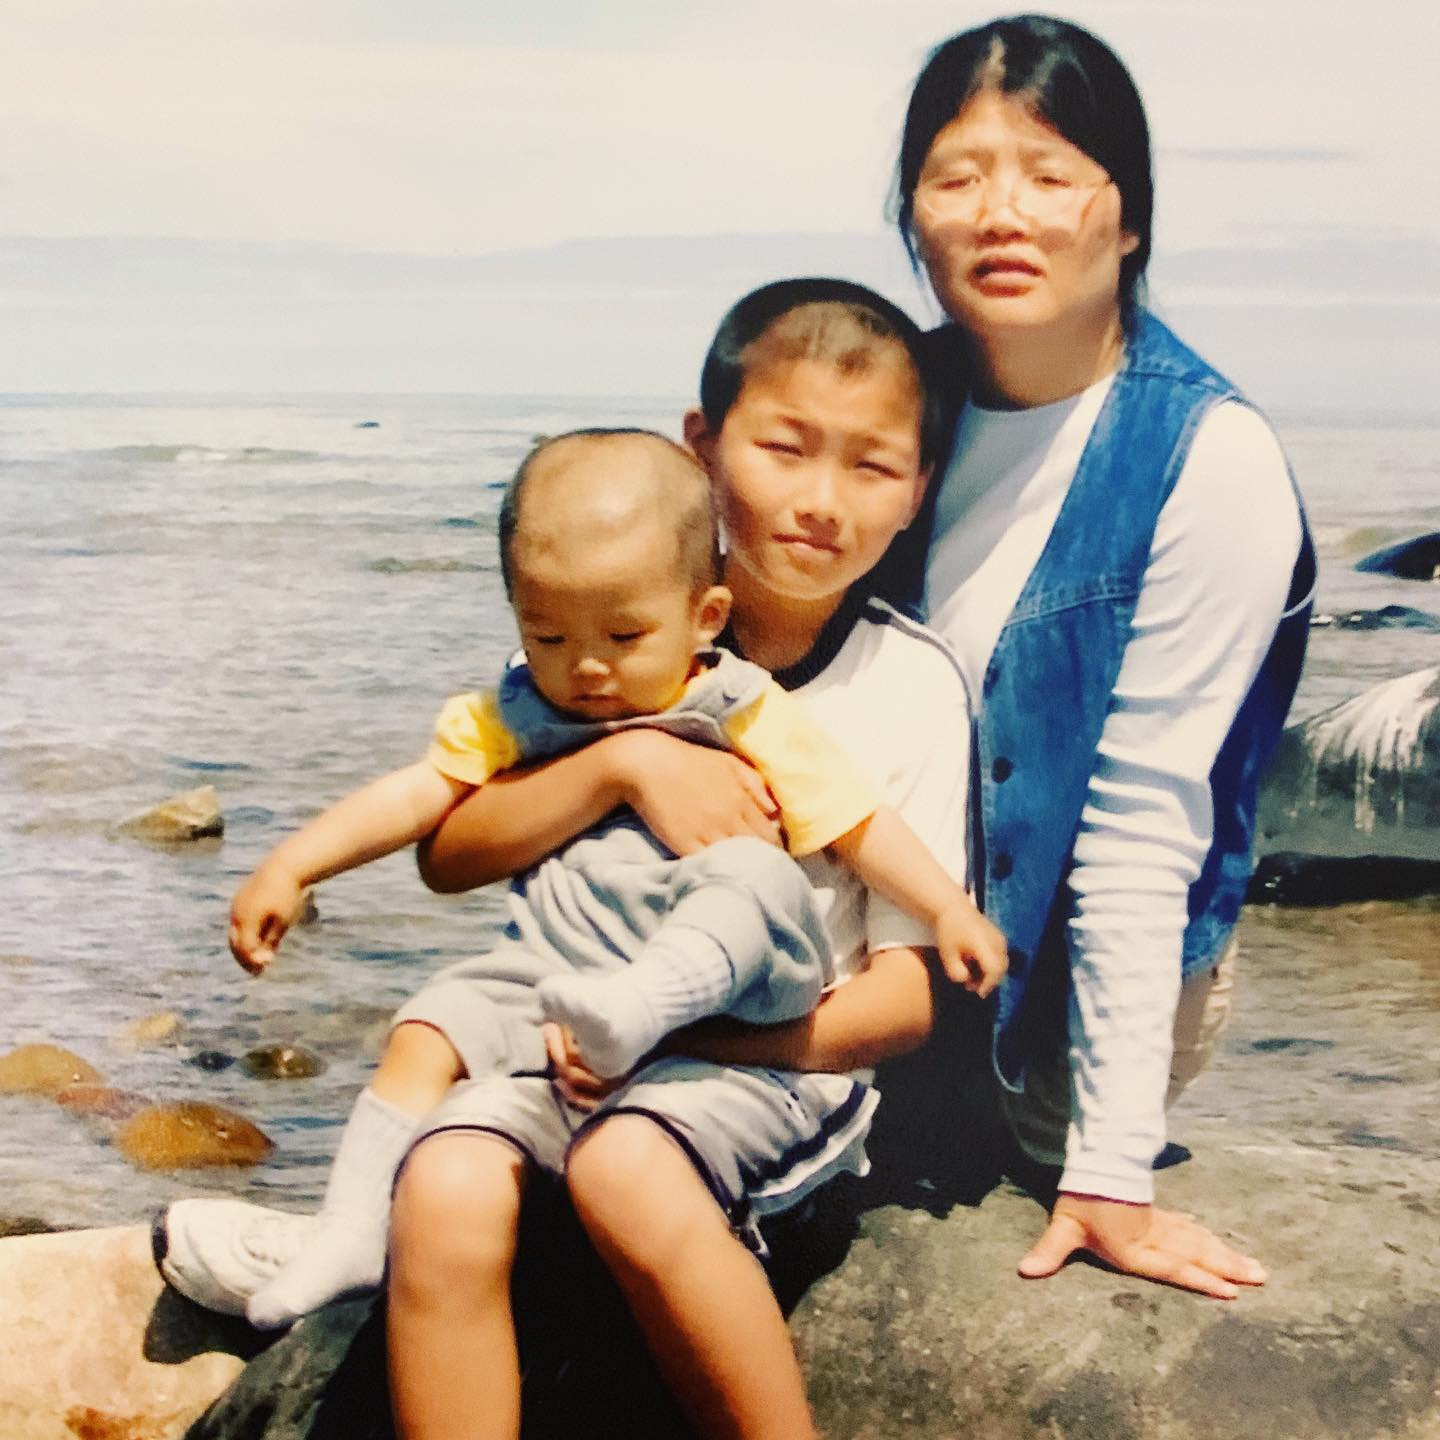 Kevin Zhang when he was a child with family